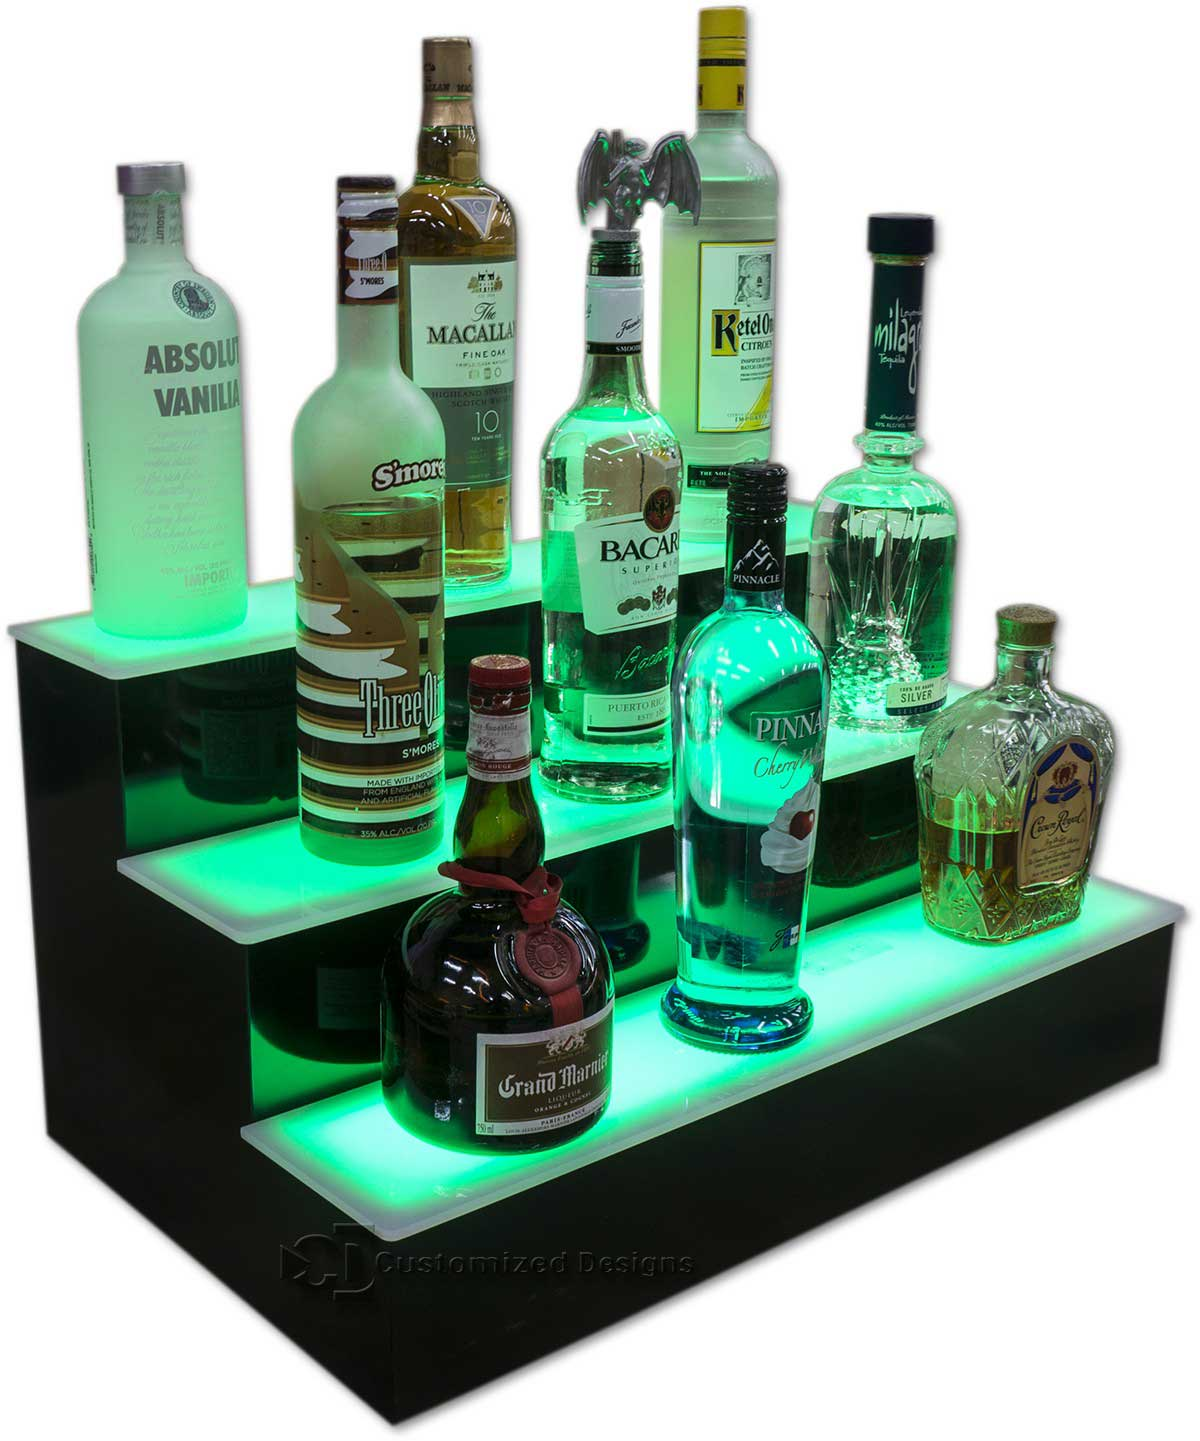 3 Tier Liquor Display w/ Green Lighting